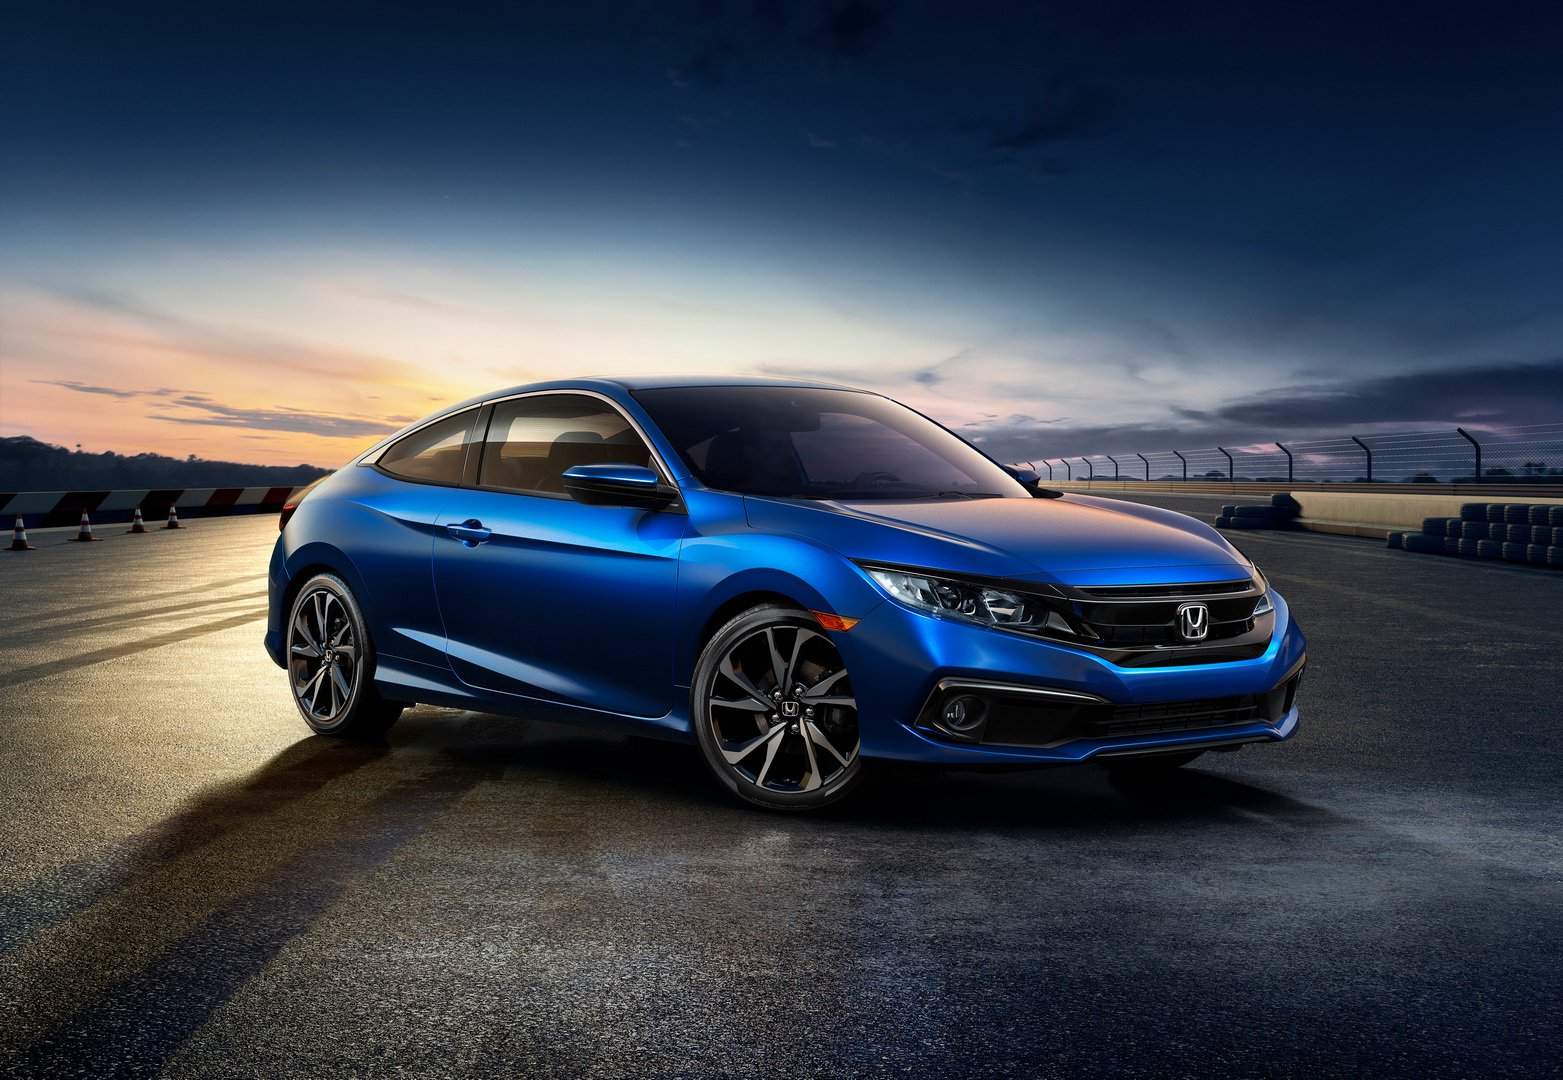 Civic Sdn: 2019 Honda Civic Sedan, Coupe Feature Refreshed Styling